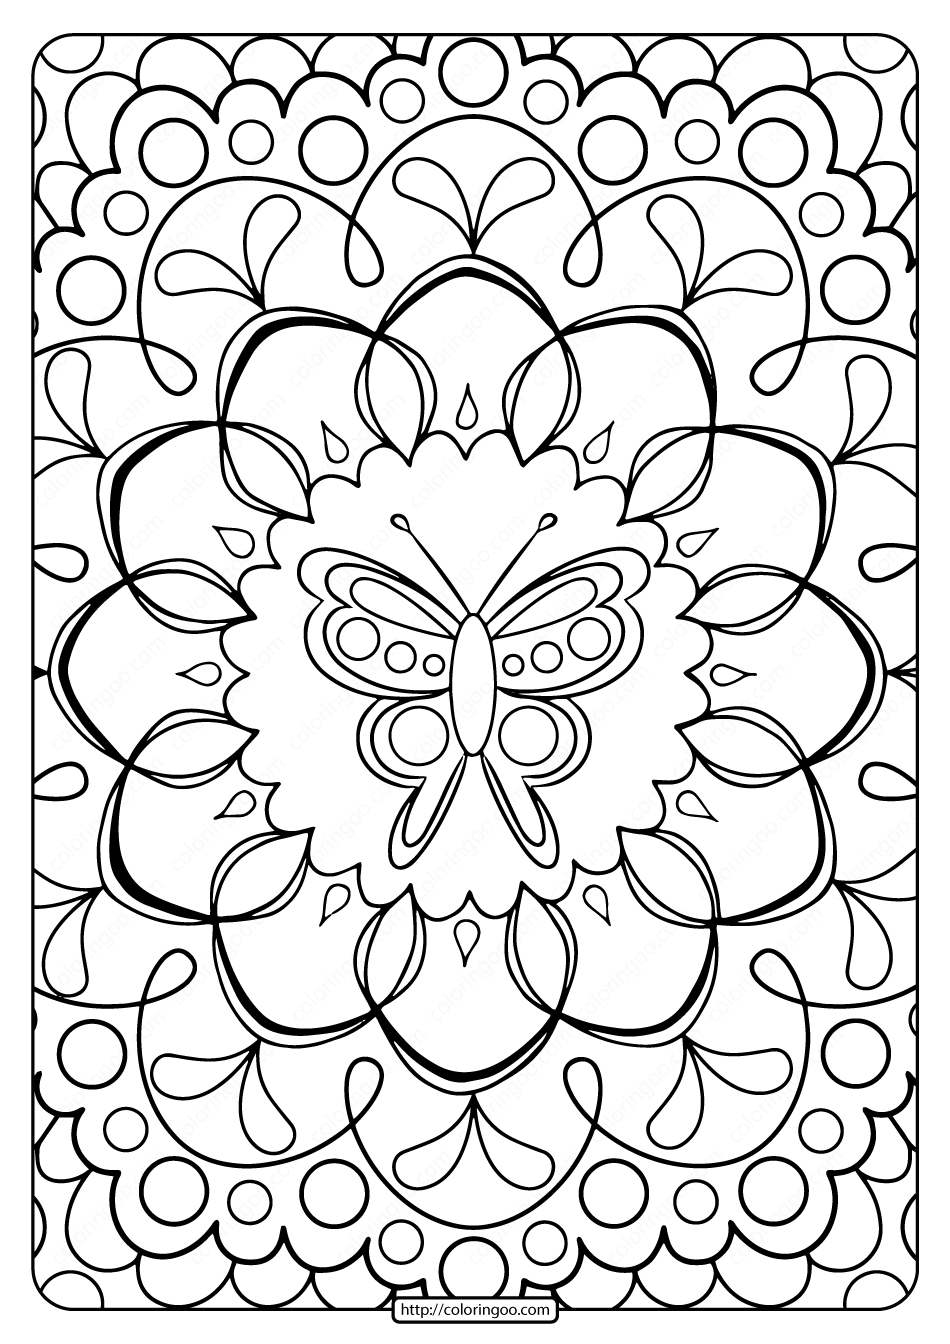 coloring sheet things to color color by letters coloring pages best coloring pages for kids to sheet things color coloring